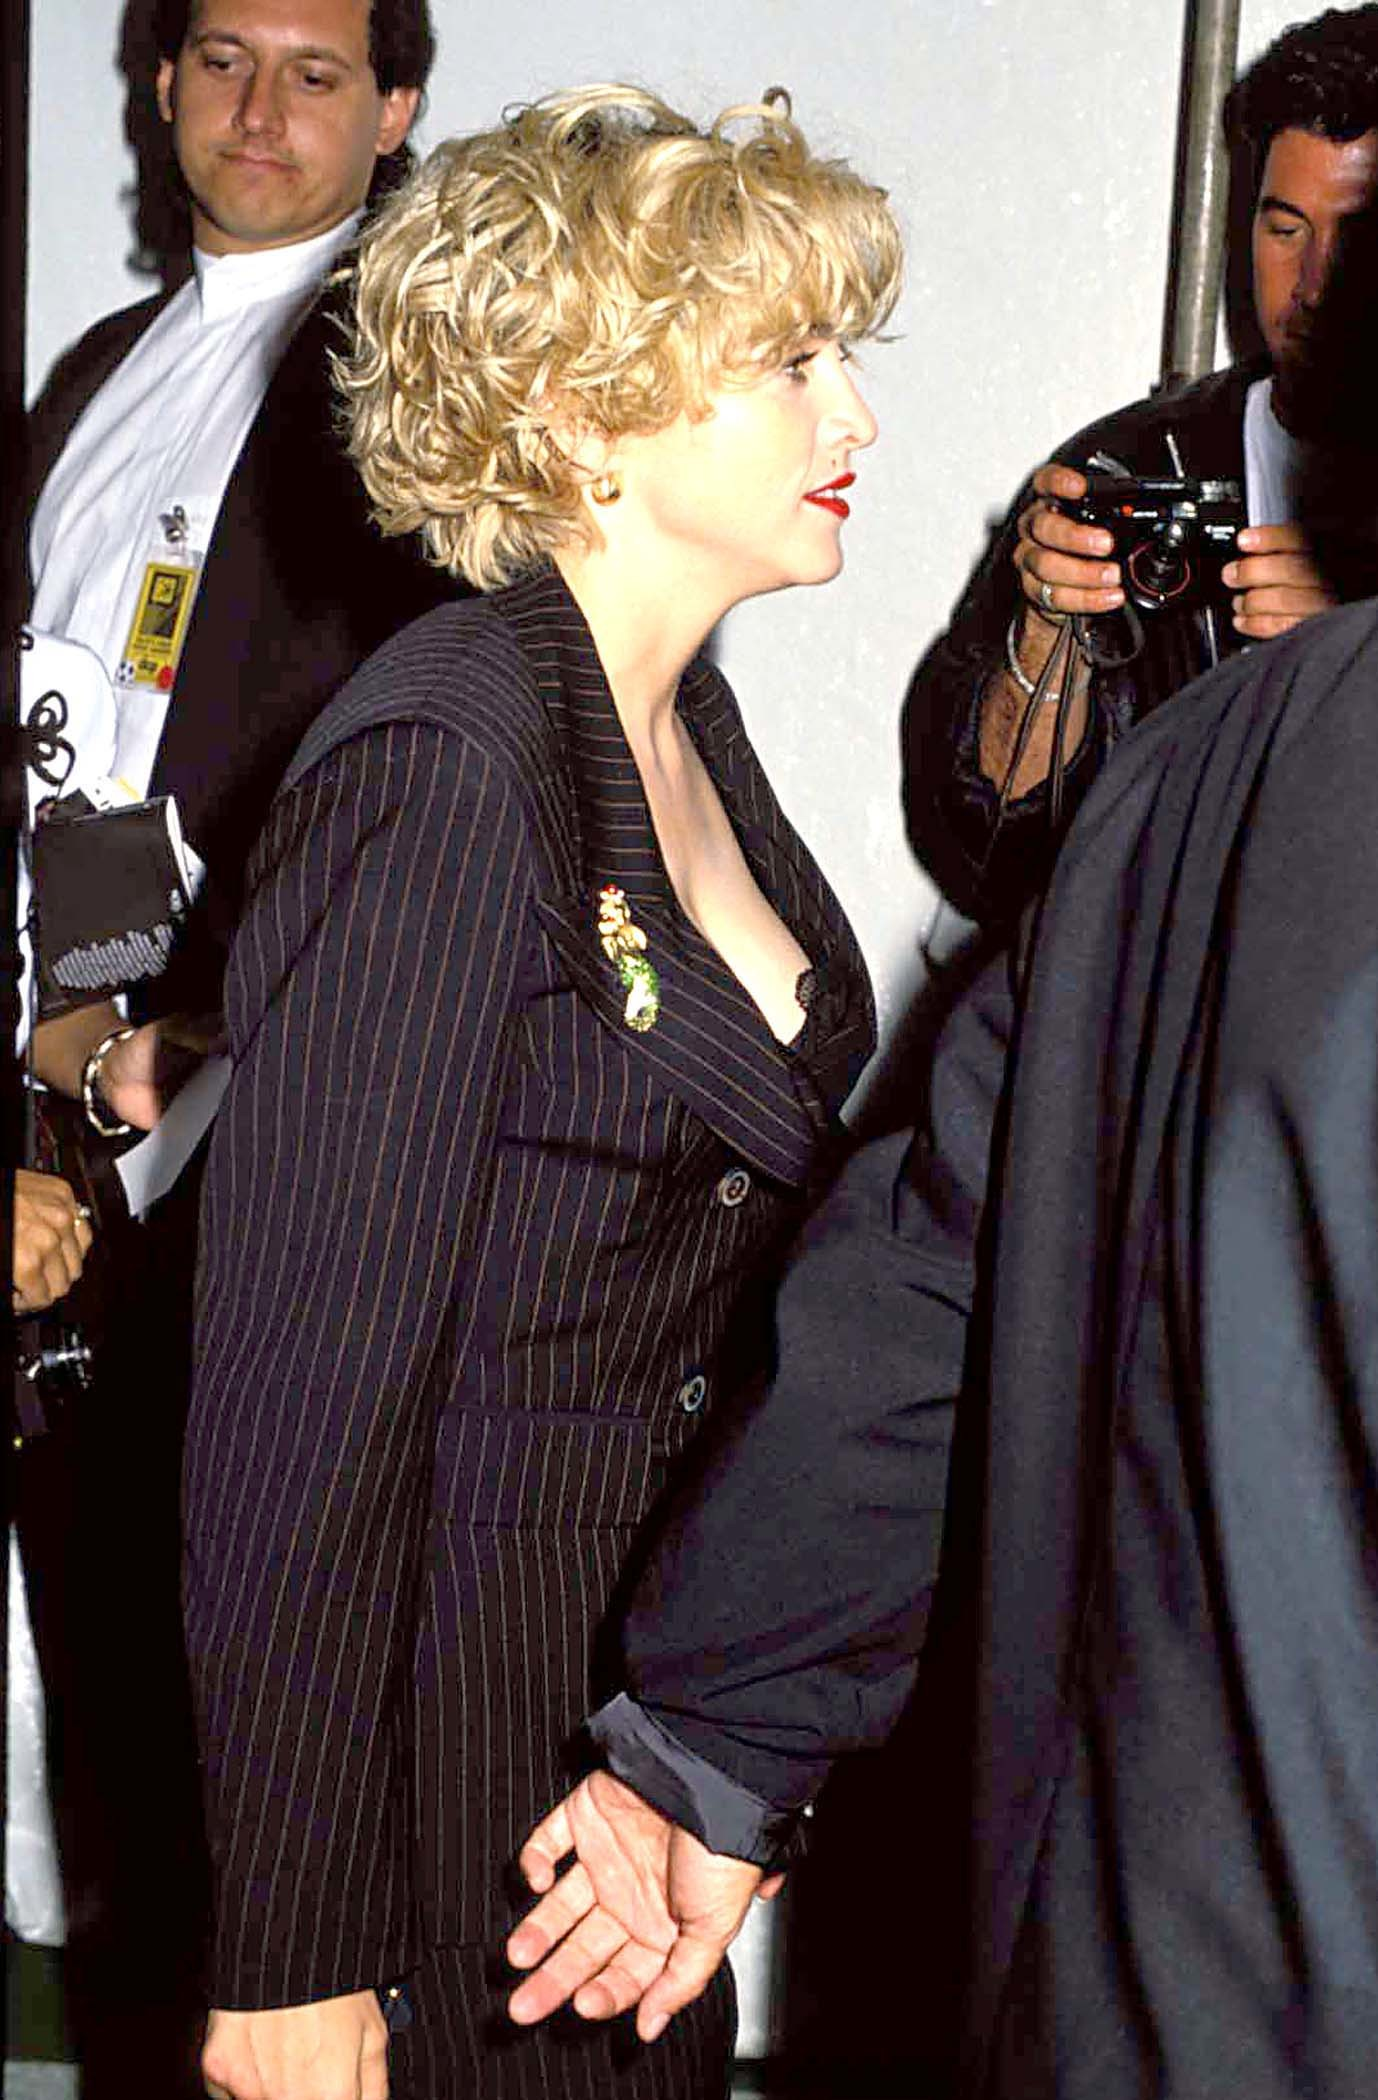 Madonna is pictured at the 1989 MTV Video Music Awards in Los Angeles on Sept. 6, 1989.